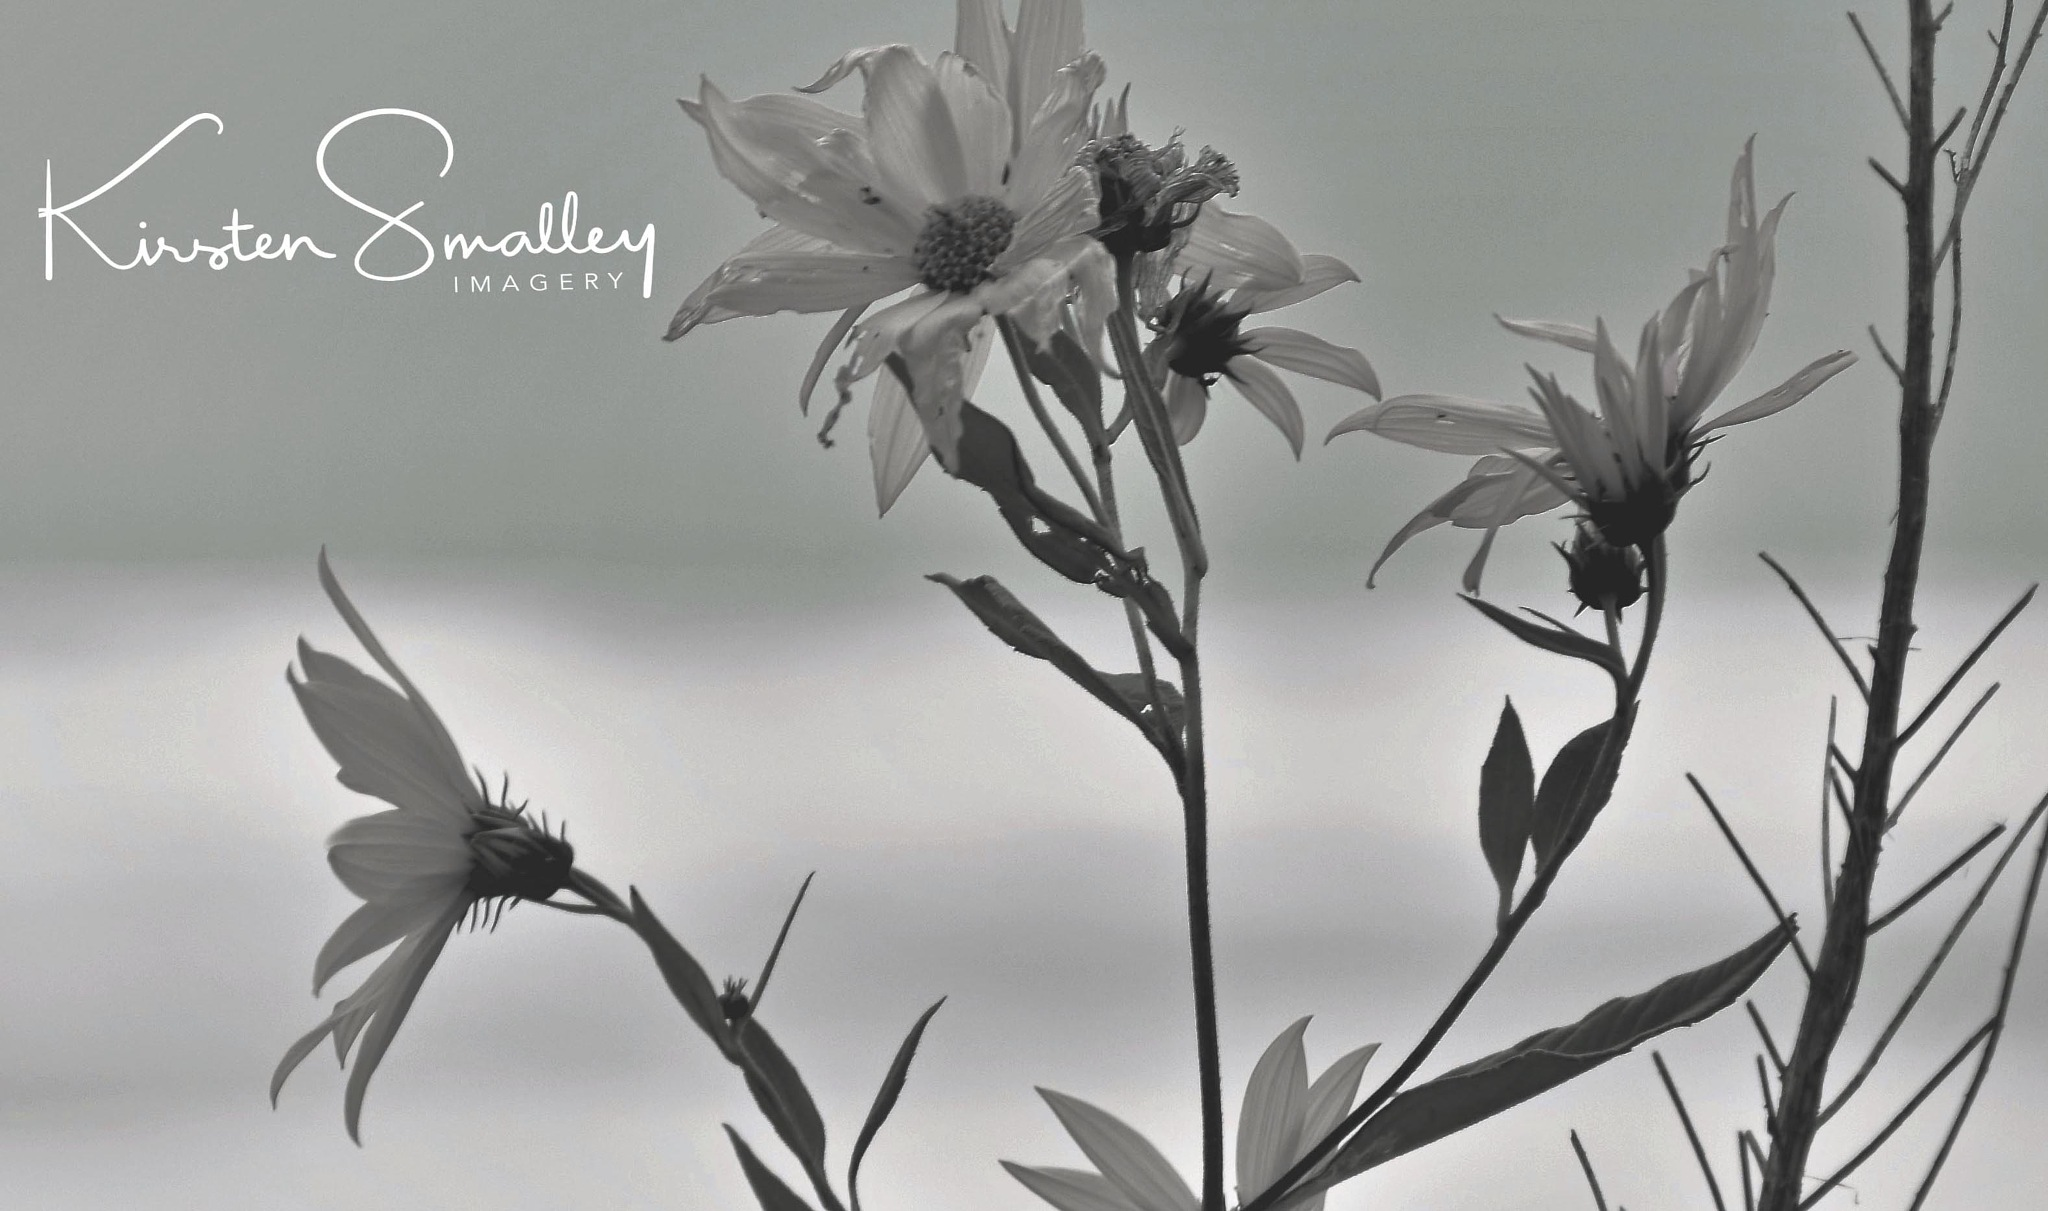 Wildflowers by Kirsten Smalley